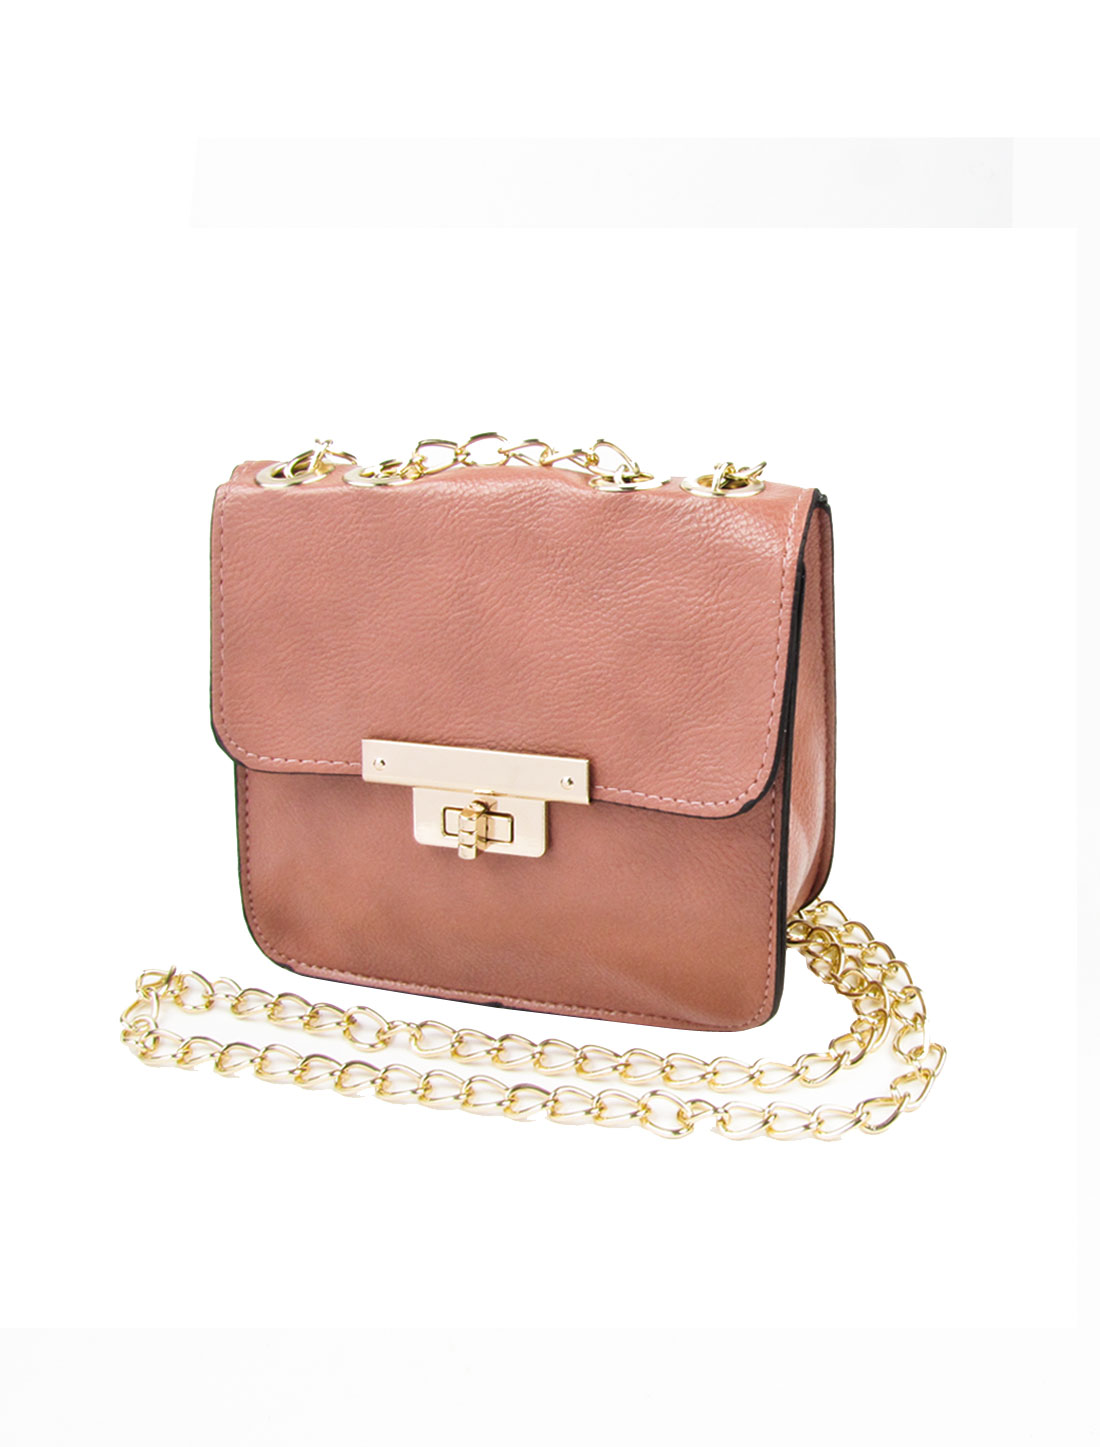 Pink Faux Leather Turn Lock Clasp Metal Chain Crossbody Bag Handbag for Lady